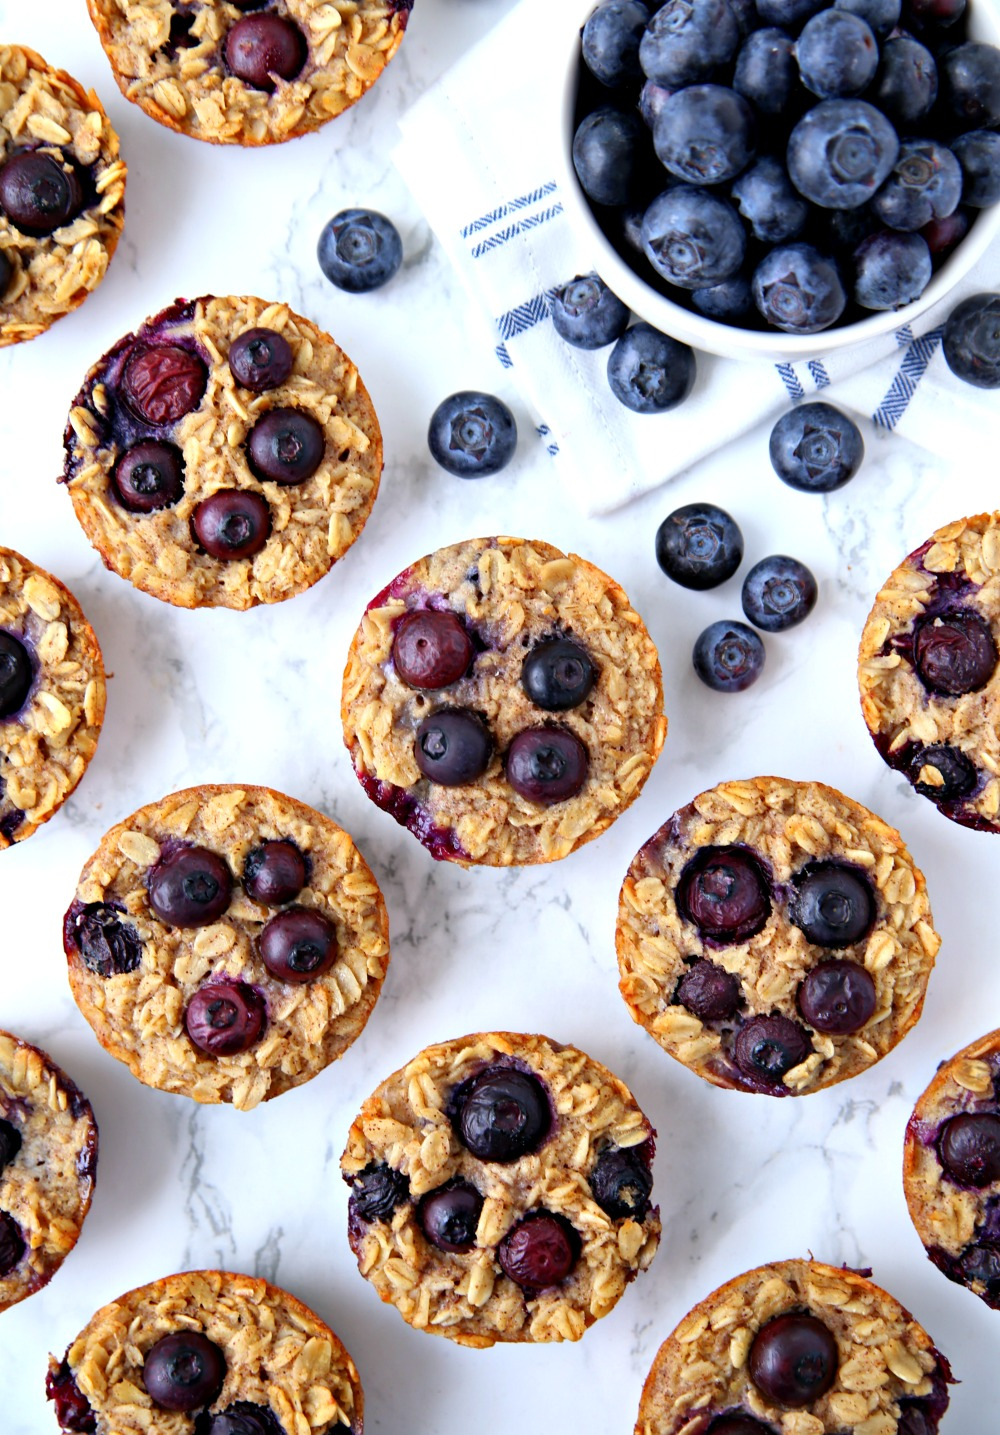 Blueberry Oatmeal Cups on marble countertop